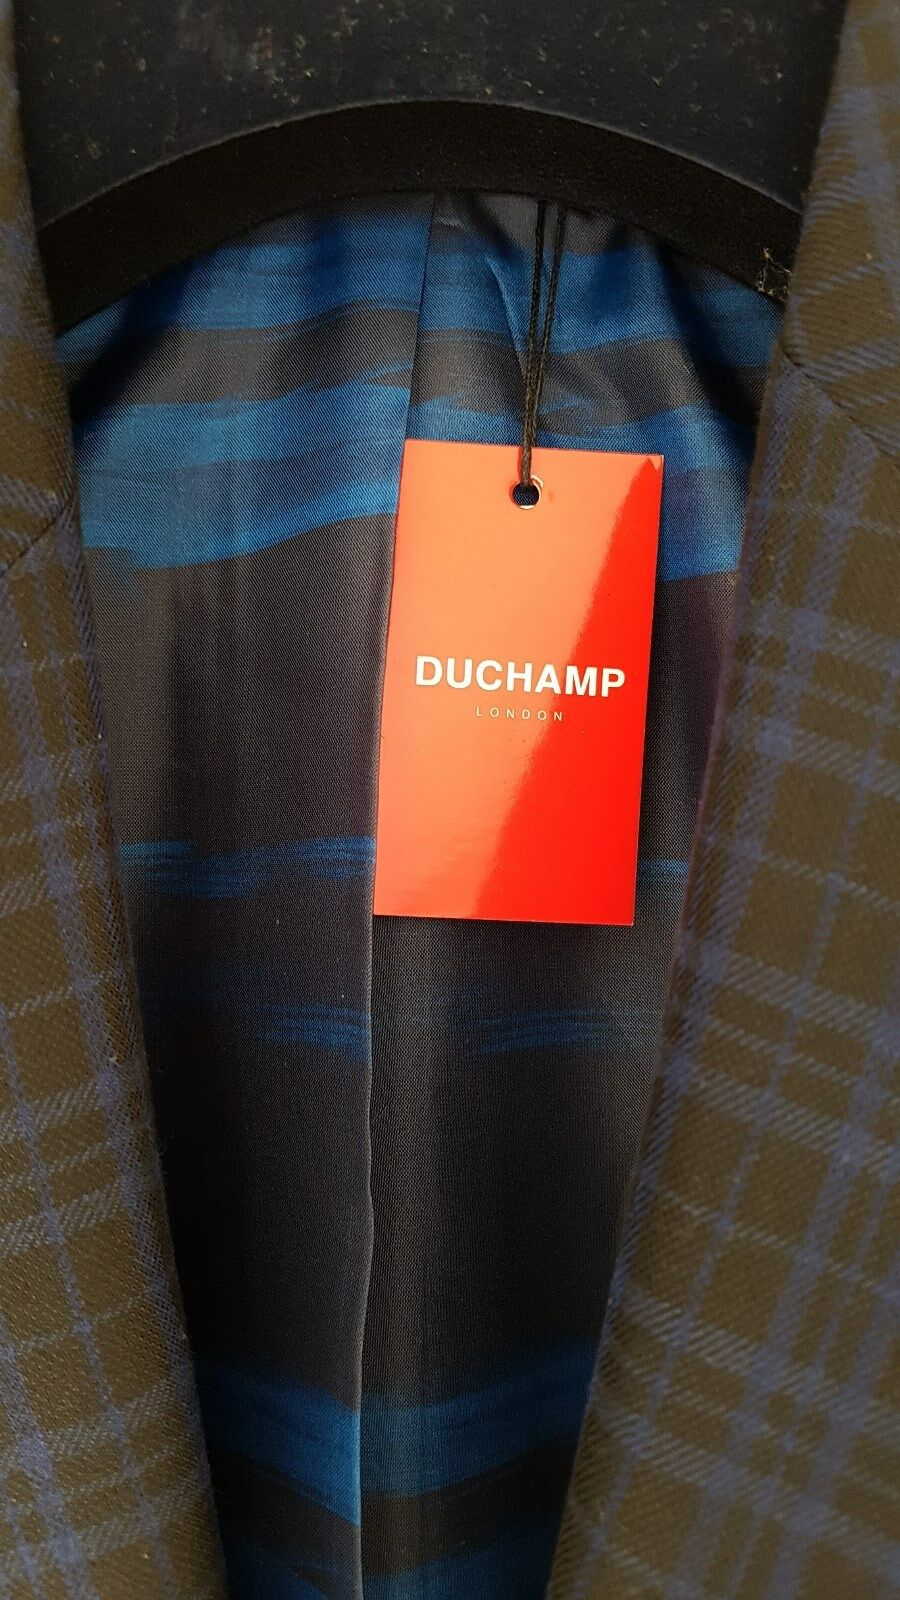 Duchamp London Veste NEUF, homme, NEUF, Veste UK 36, 100% authentique, e767f4